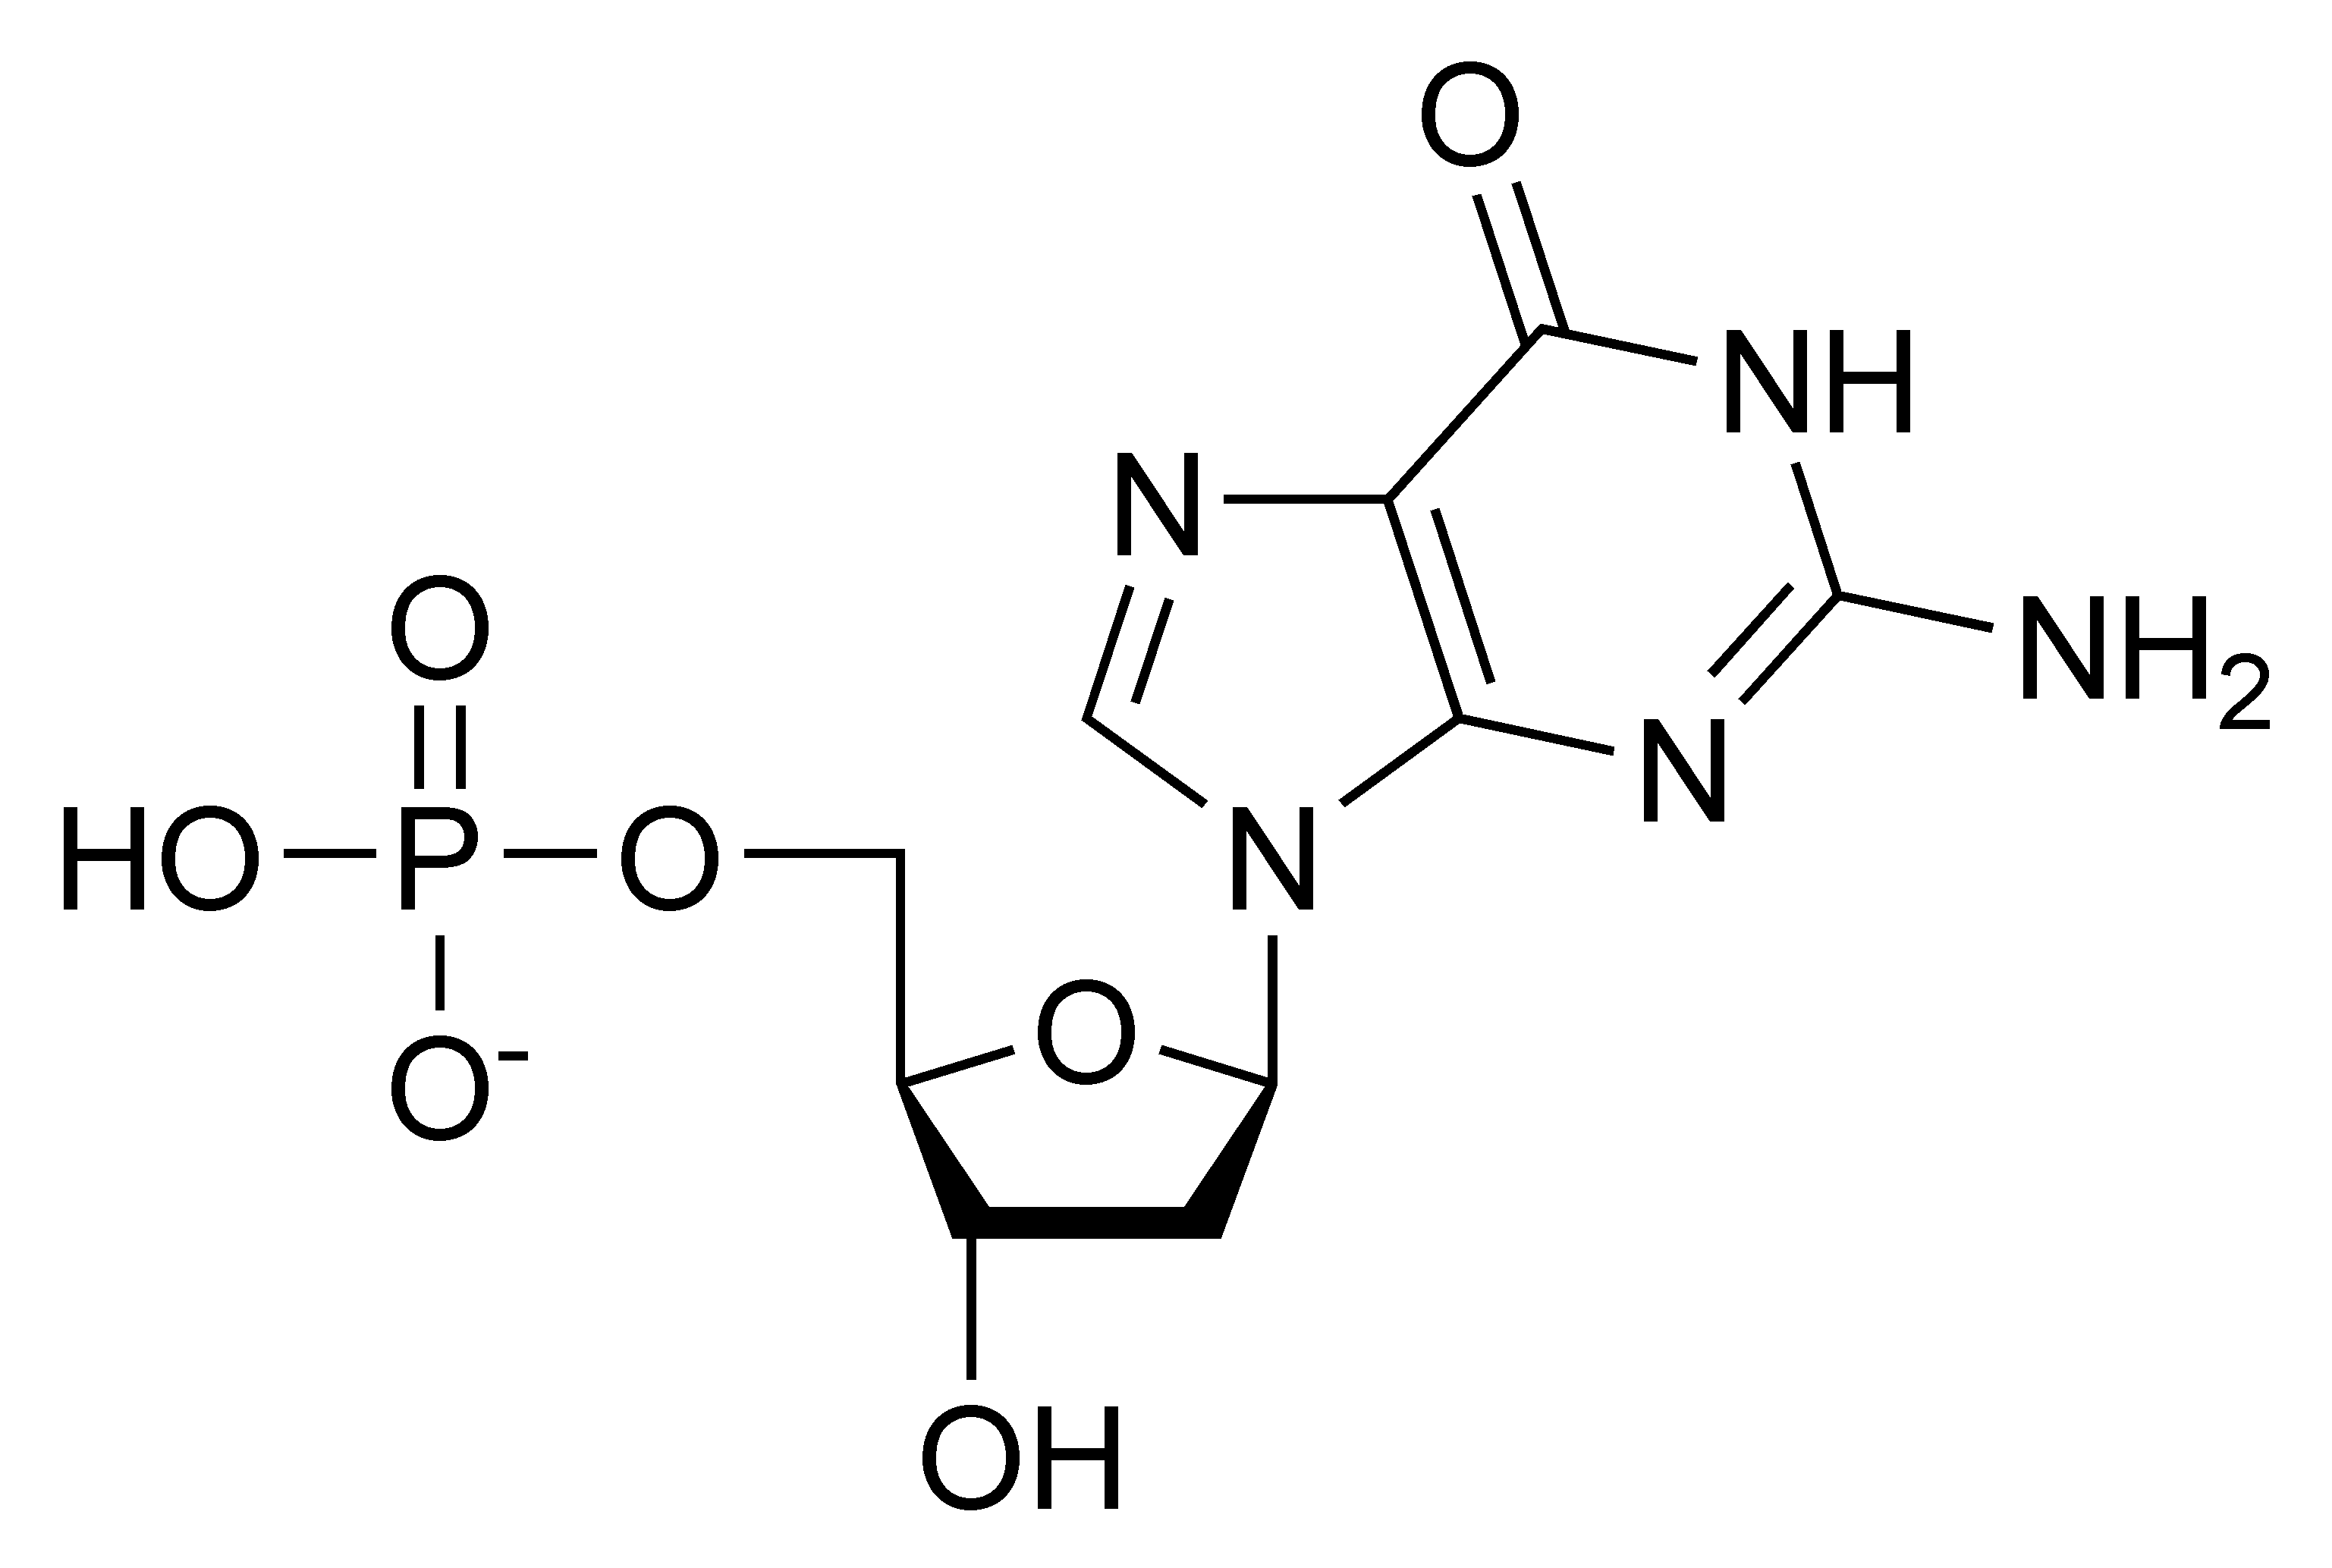 Chemical structure of deoxyguanosine monophosphate